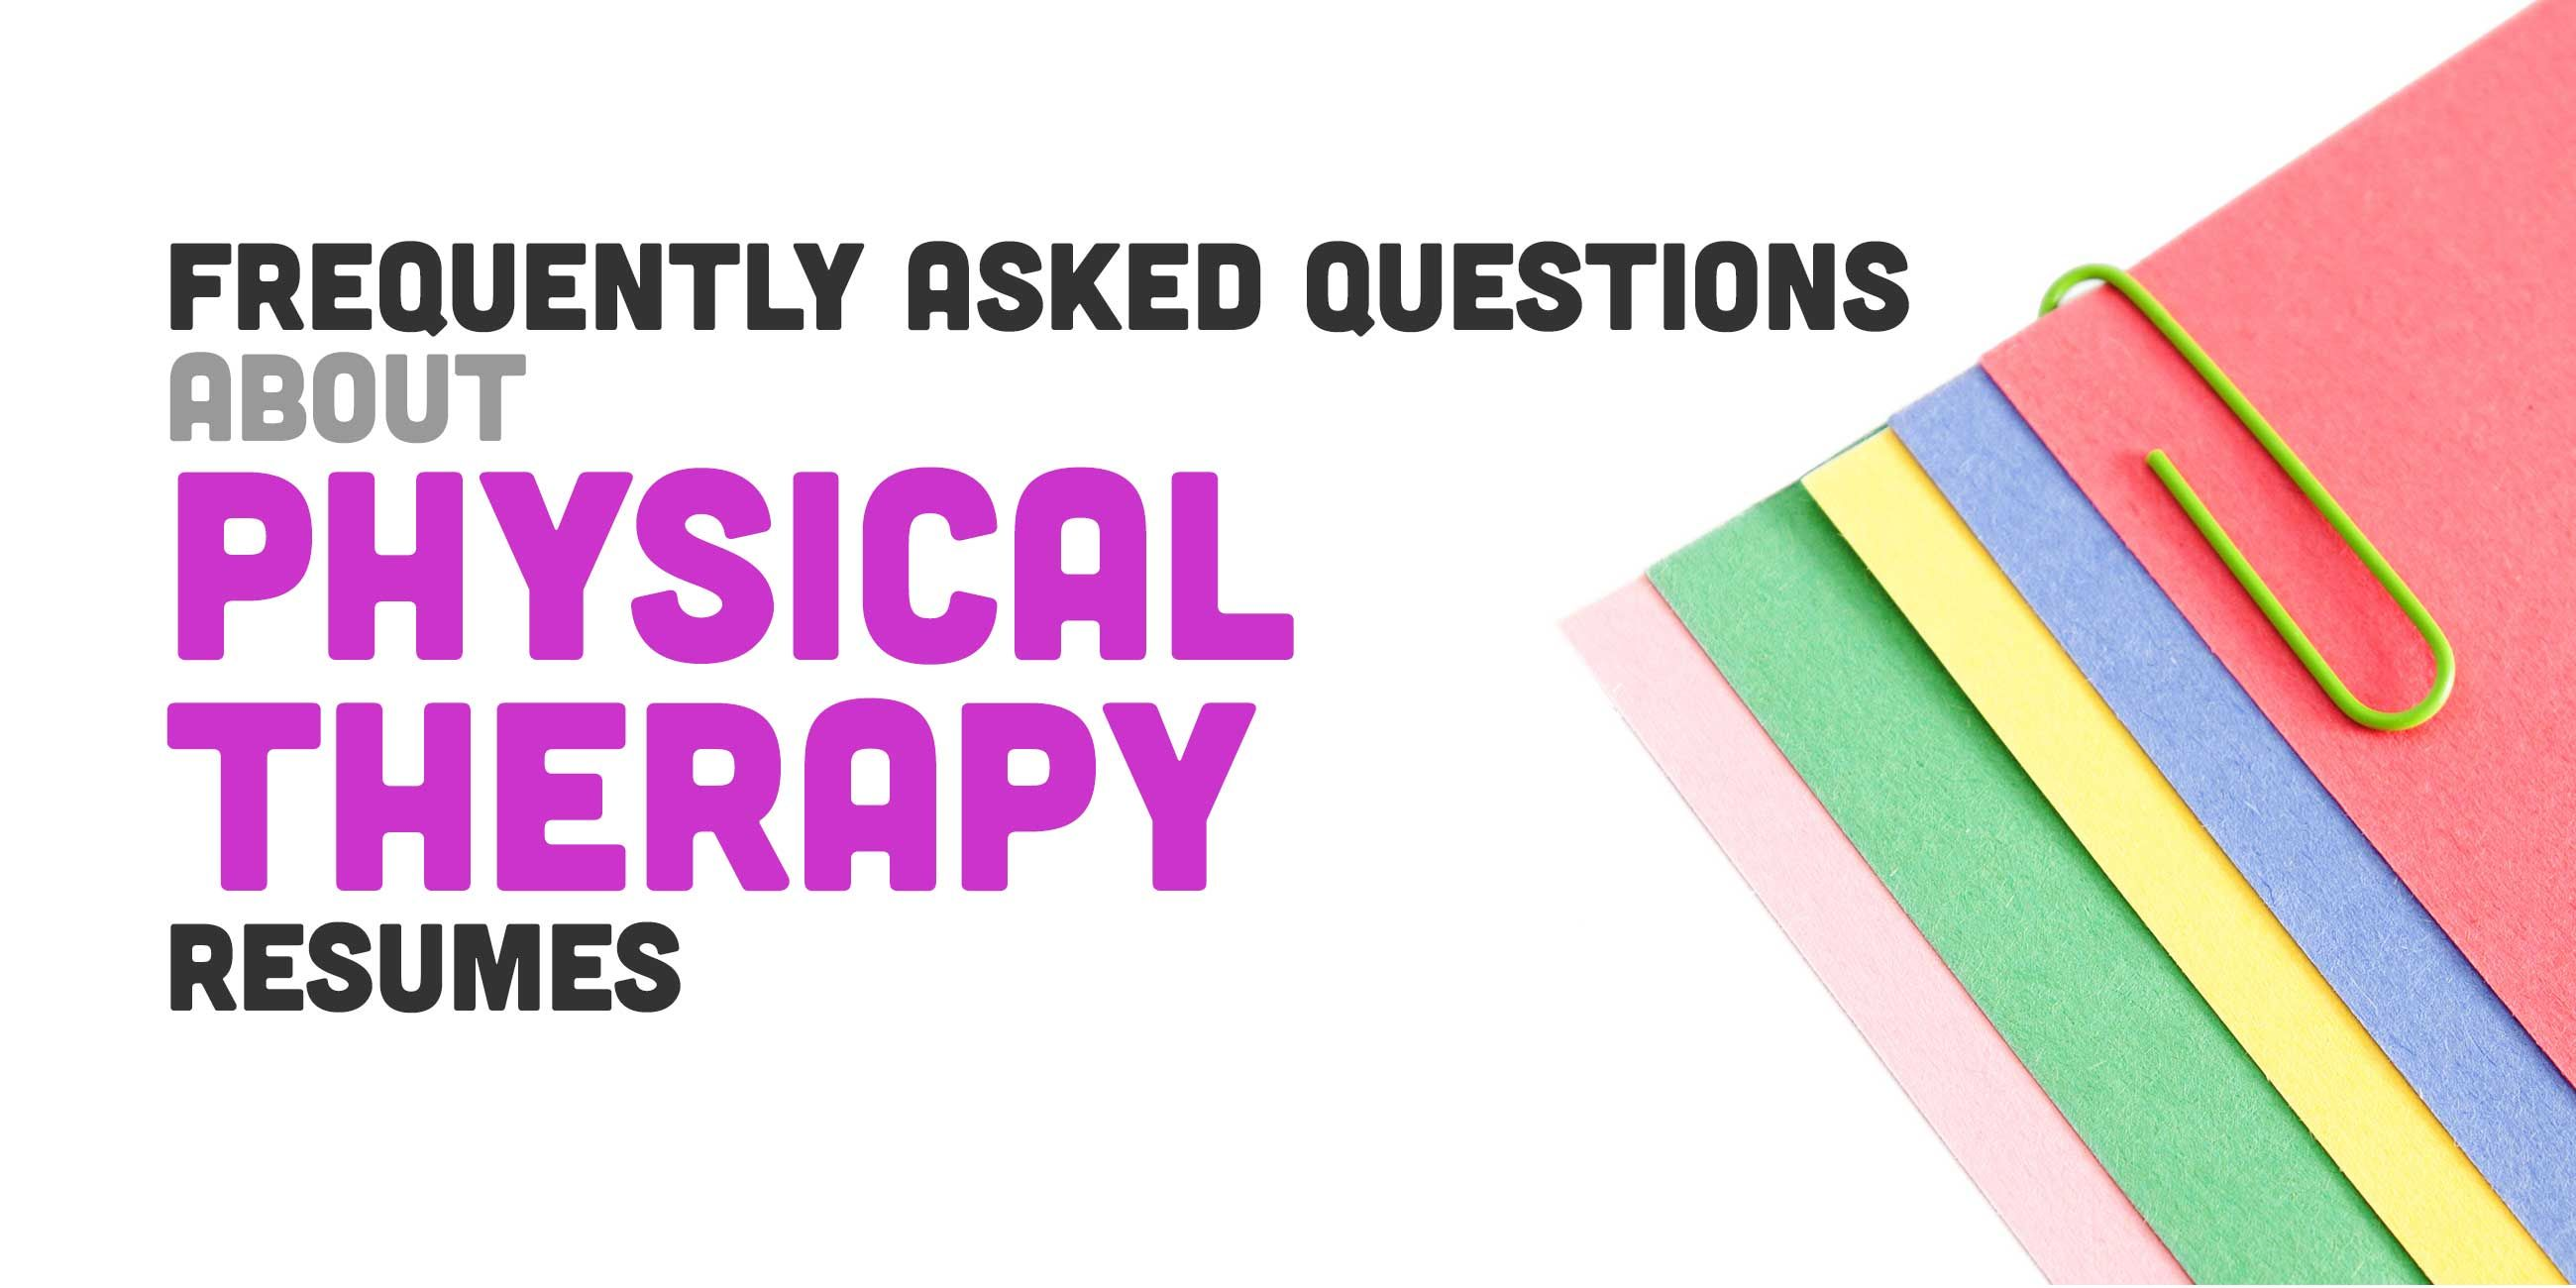 New Graduate Physical Therapists Frequently Ask Questions About